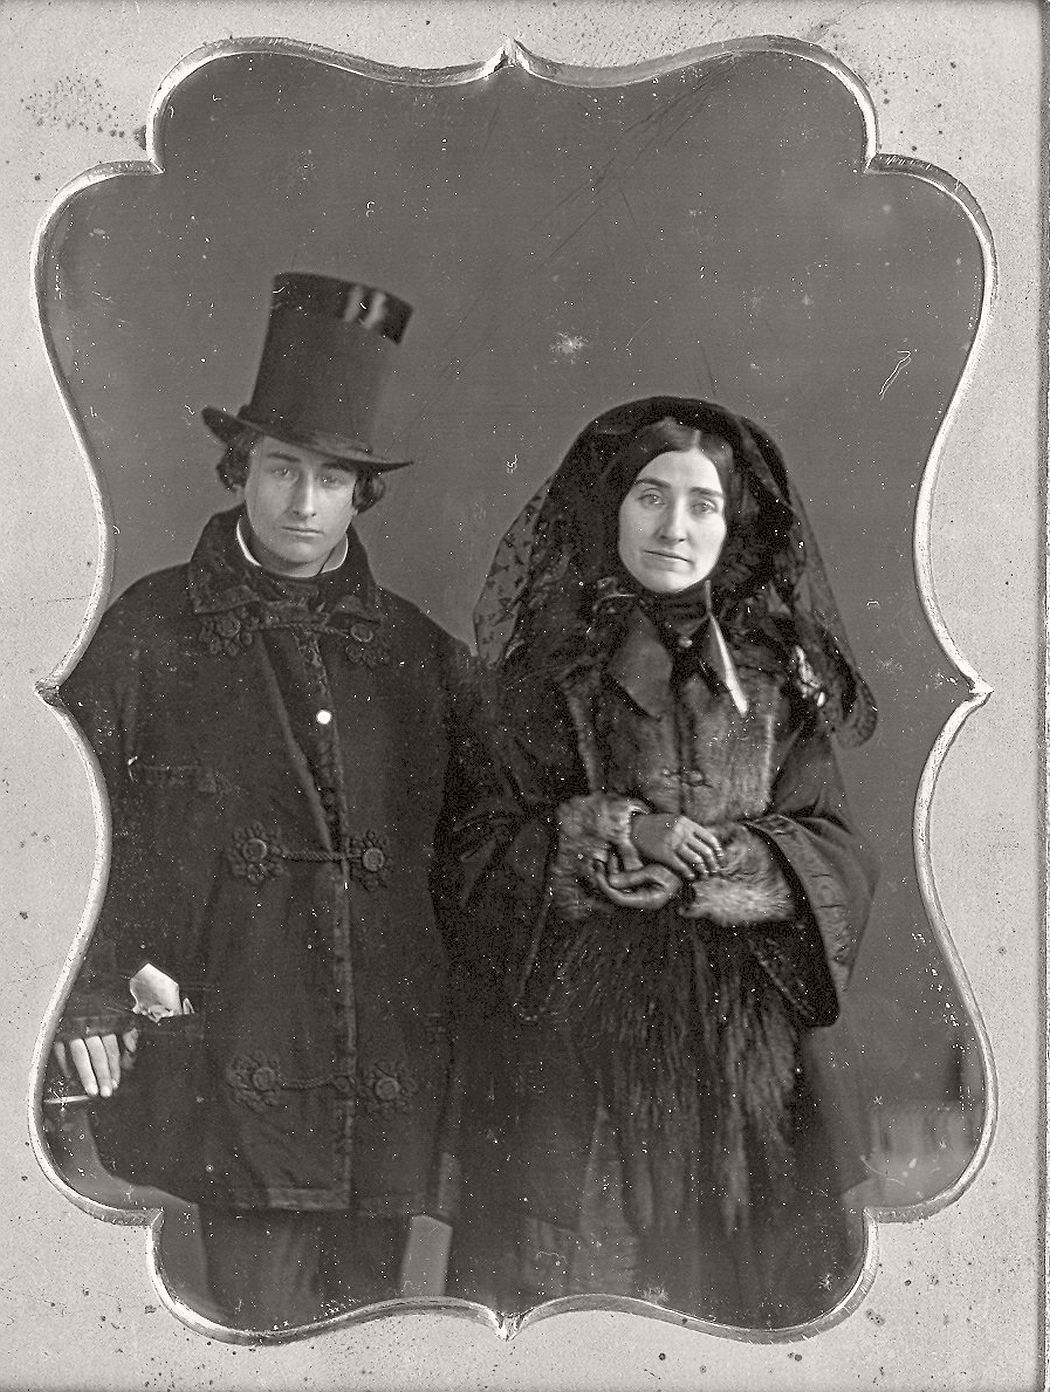 victorian-era-daguerreotype-of-men-in-hat-1850s-xix-century-02